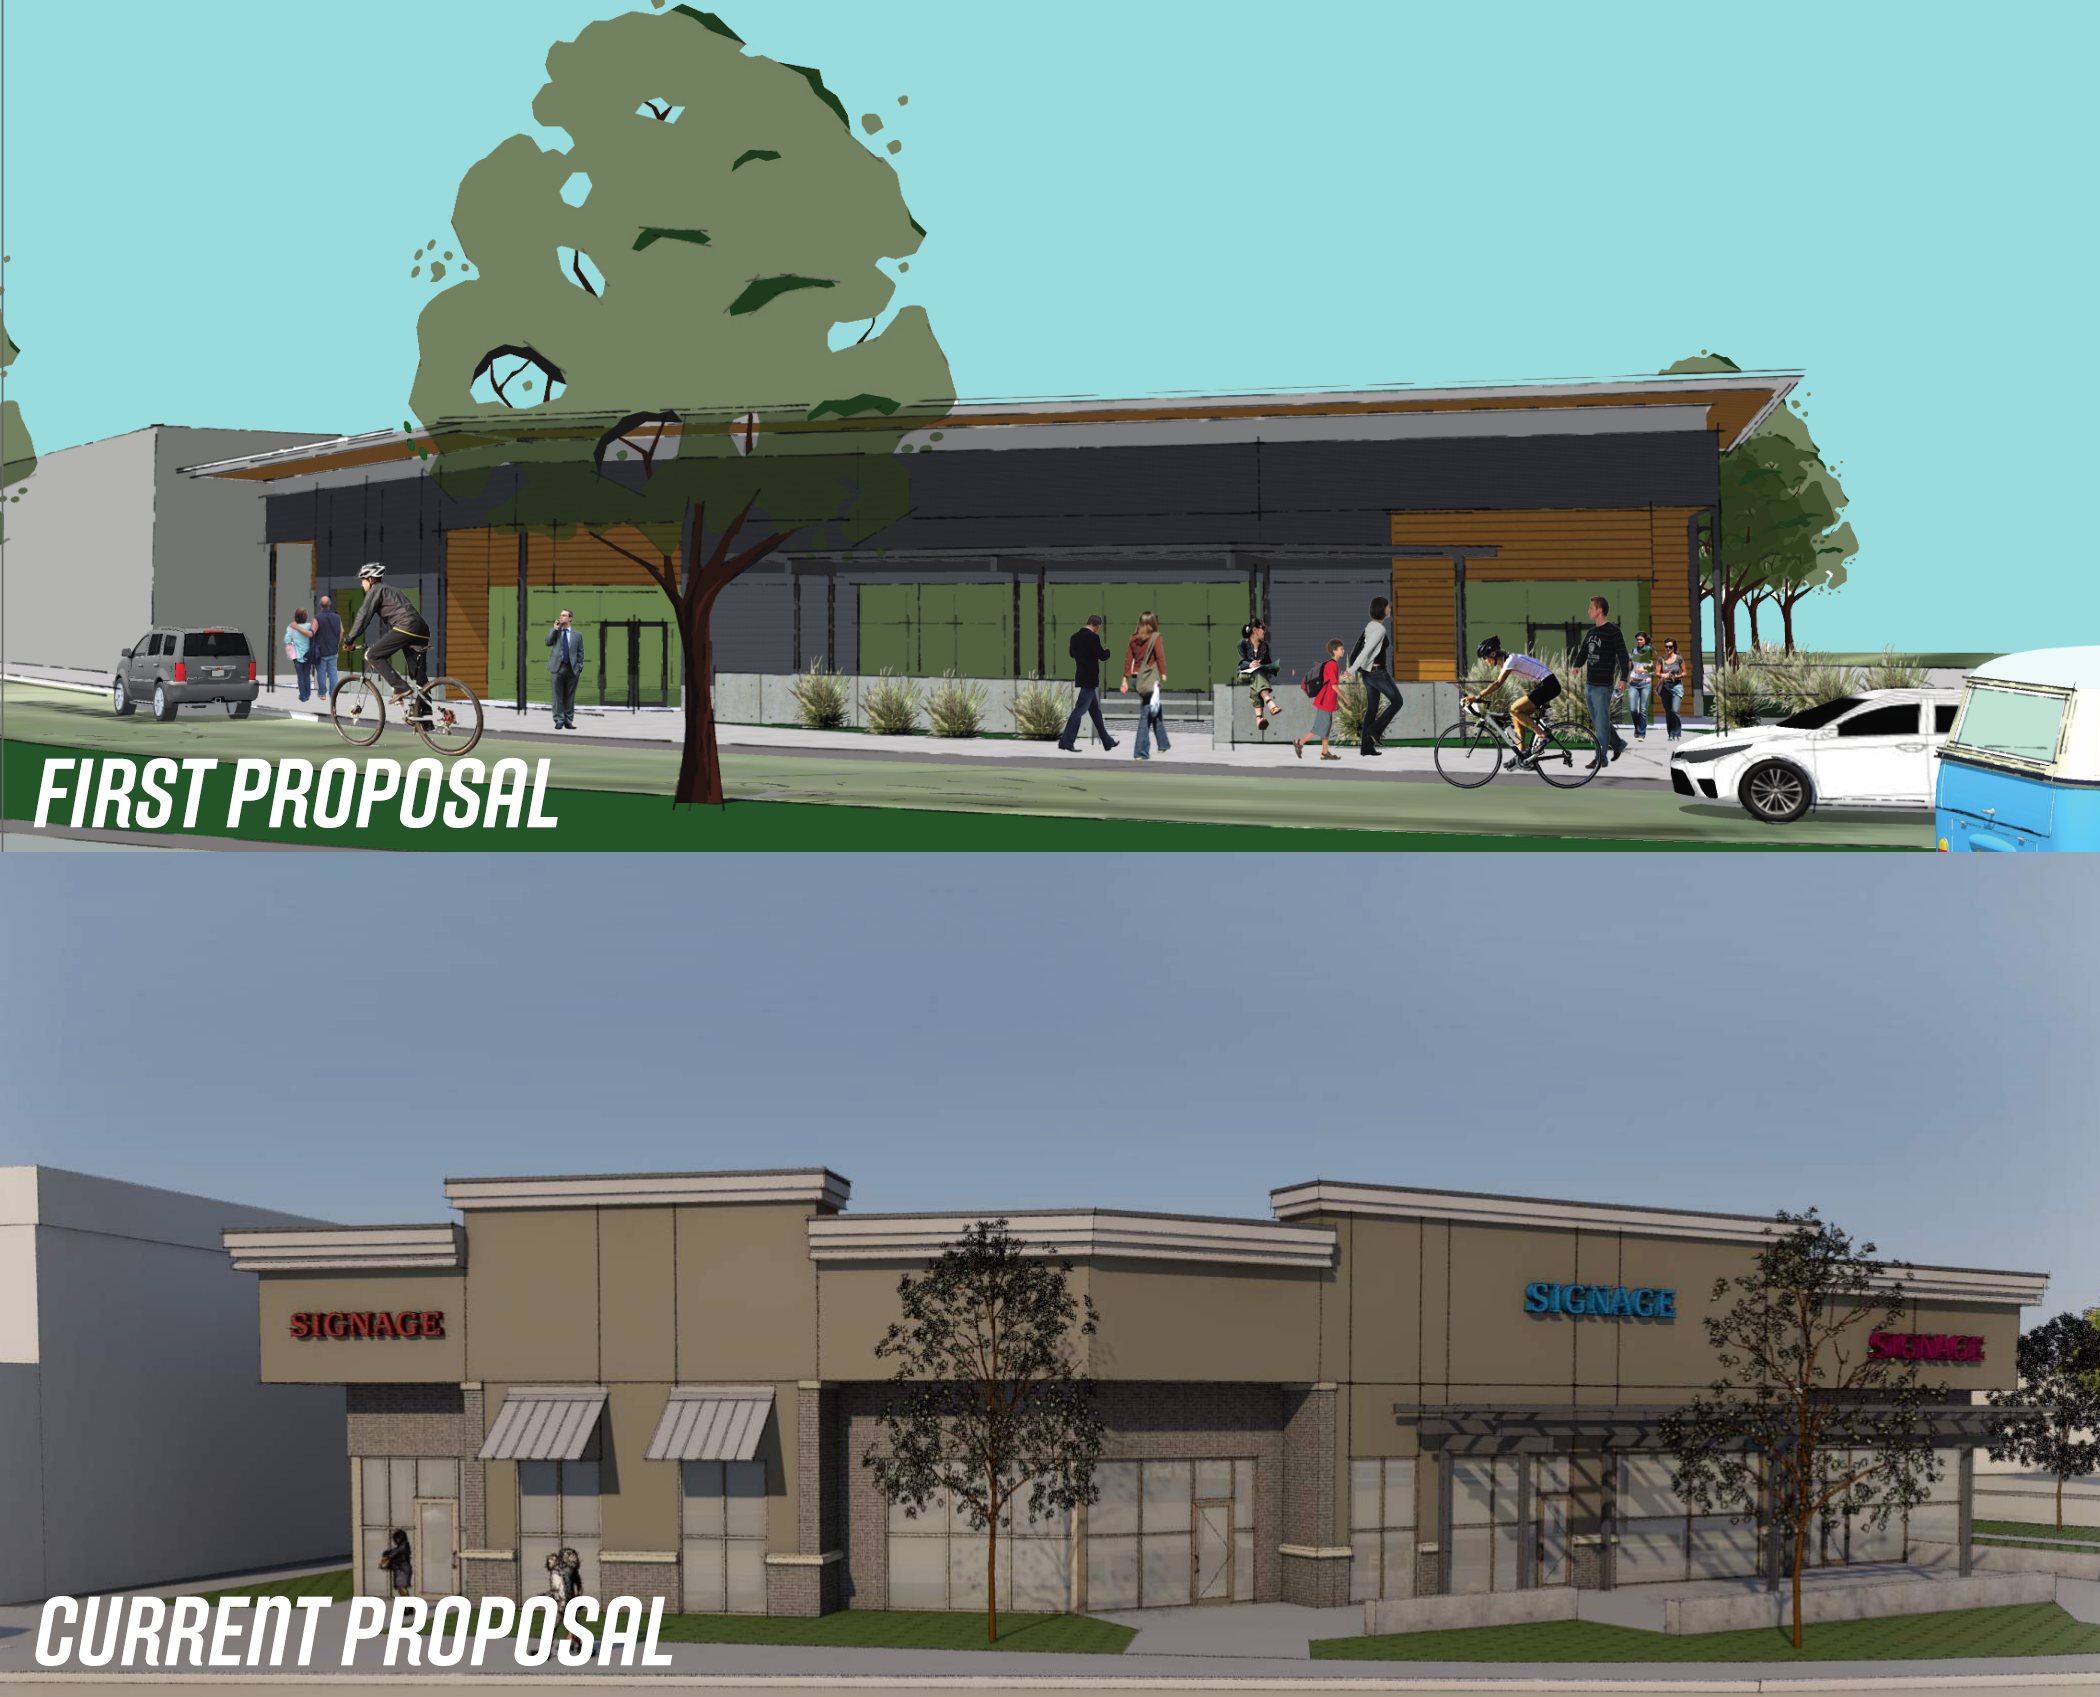 Public filings show renderings of proposed Bown Crussing restaurant and retail space